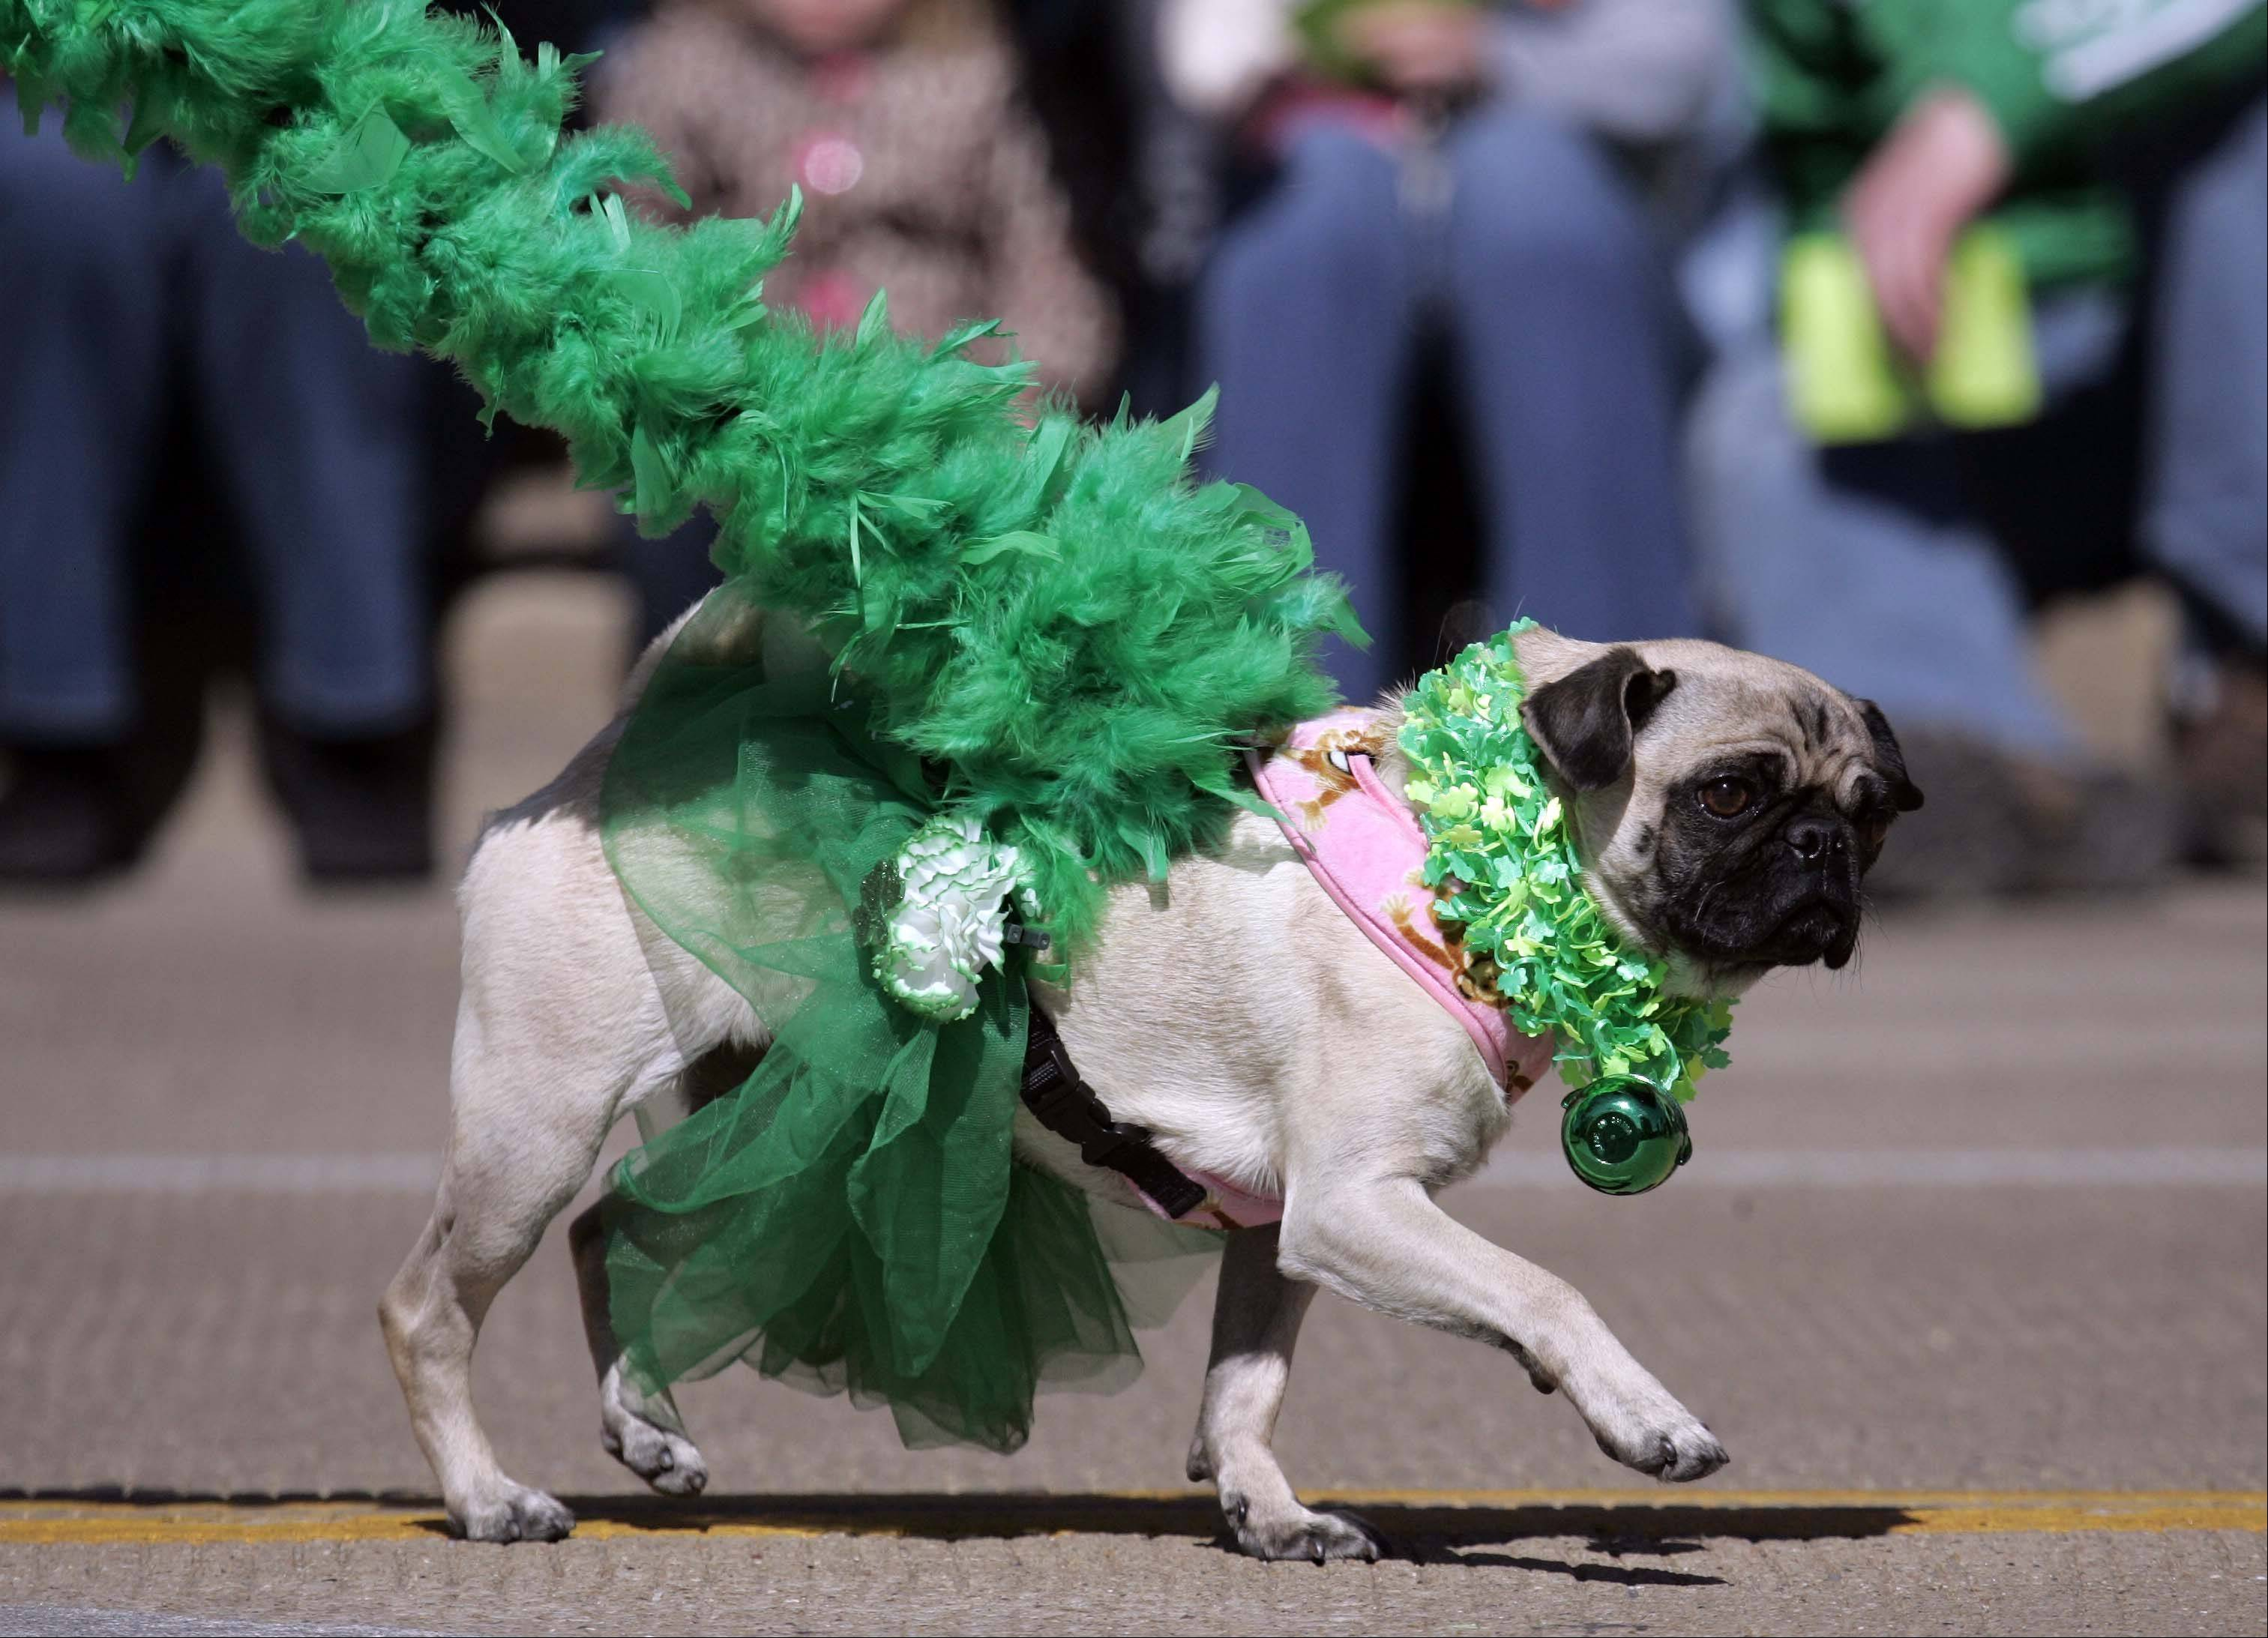 Lexi Ryan, a pug from St. Charles, is all decked out for the dog costume contest at last year's St. Charles St. Patrick's Day parade.